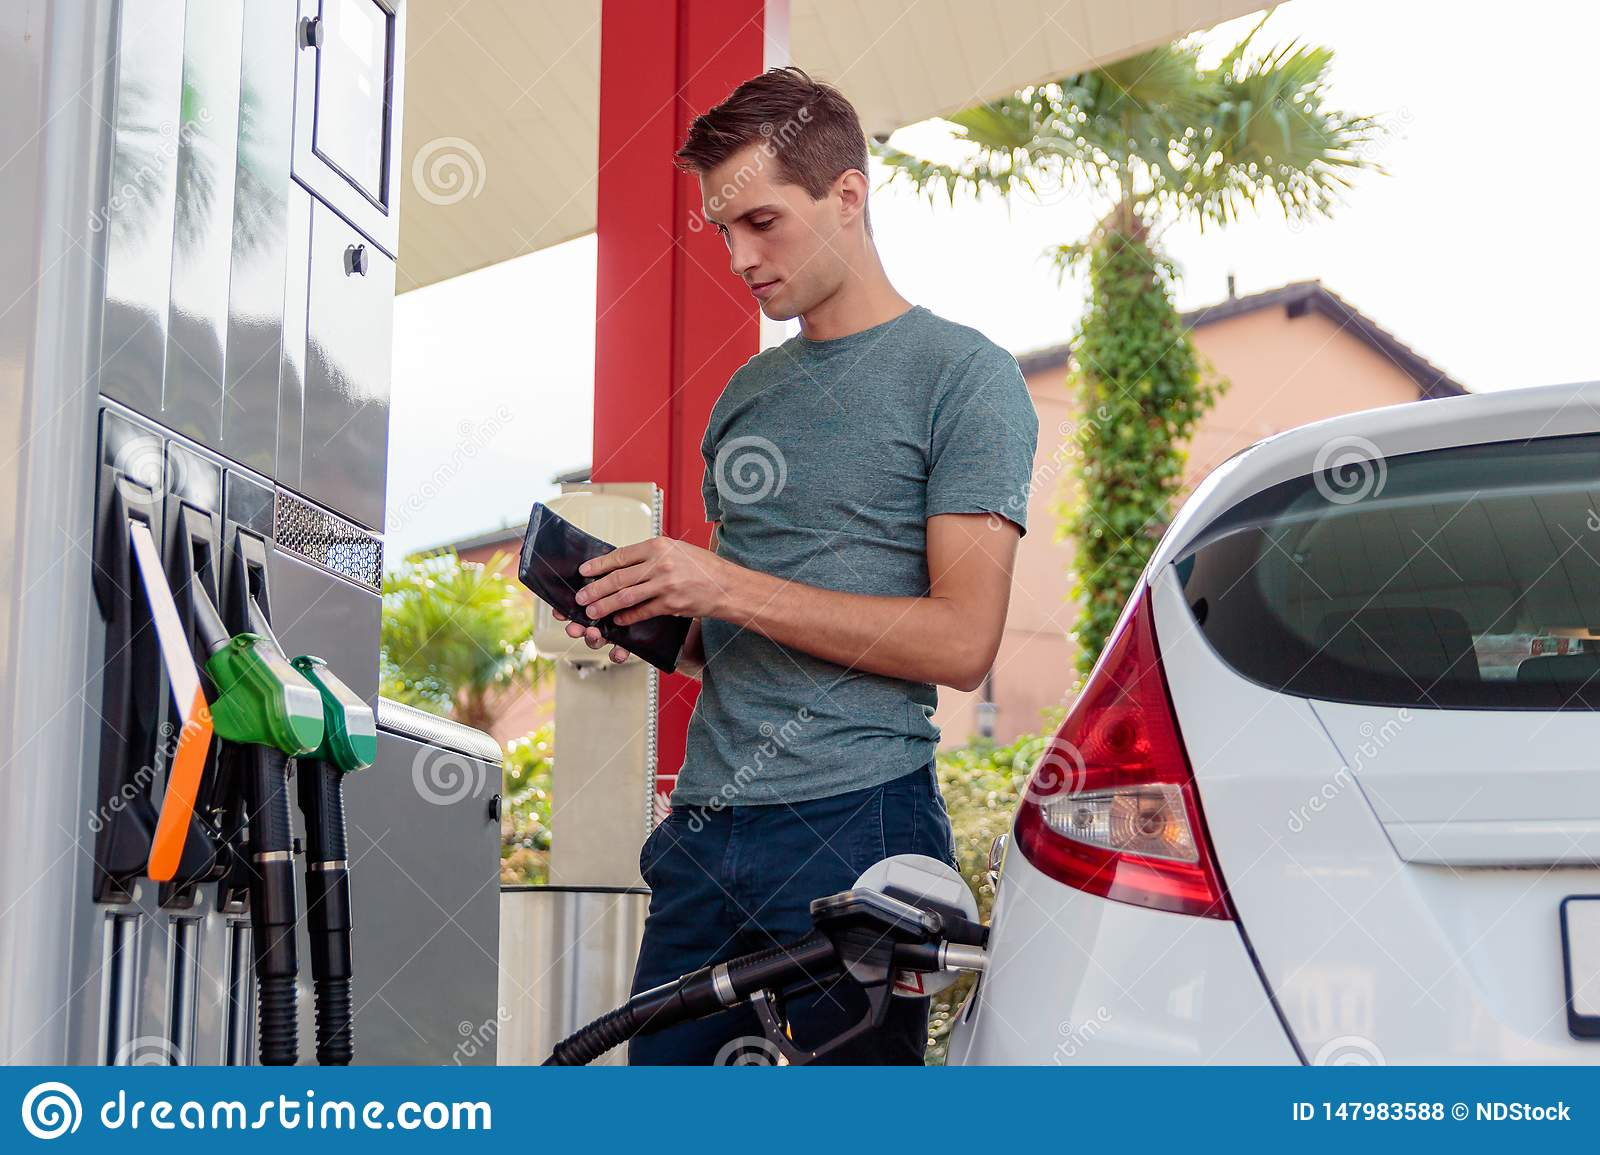 Young handsome man checking his wallet during gasoline refilling